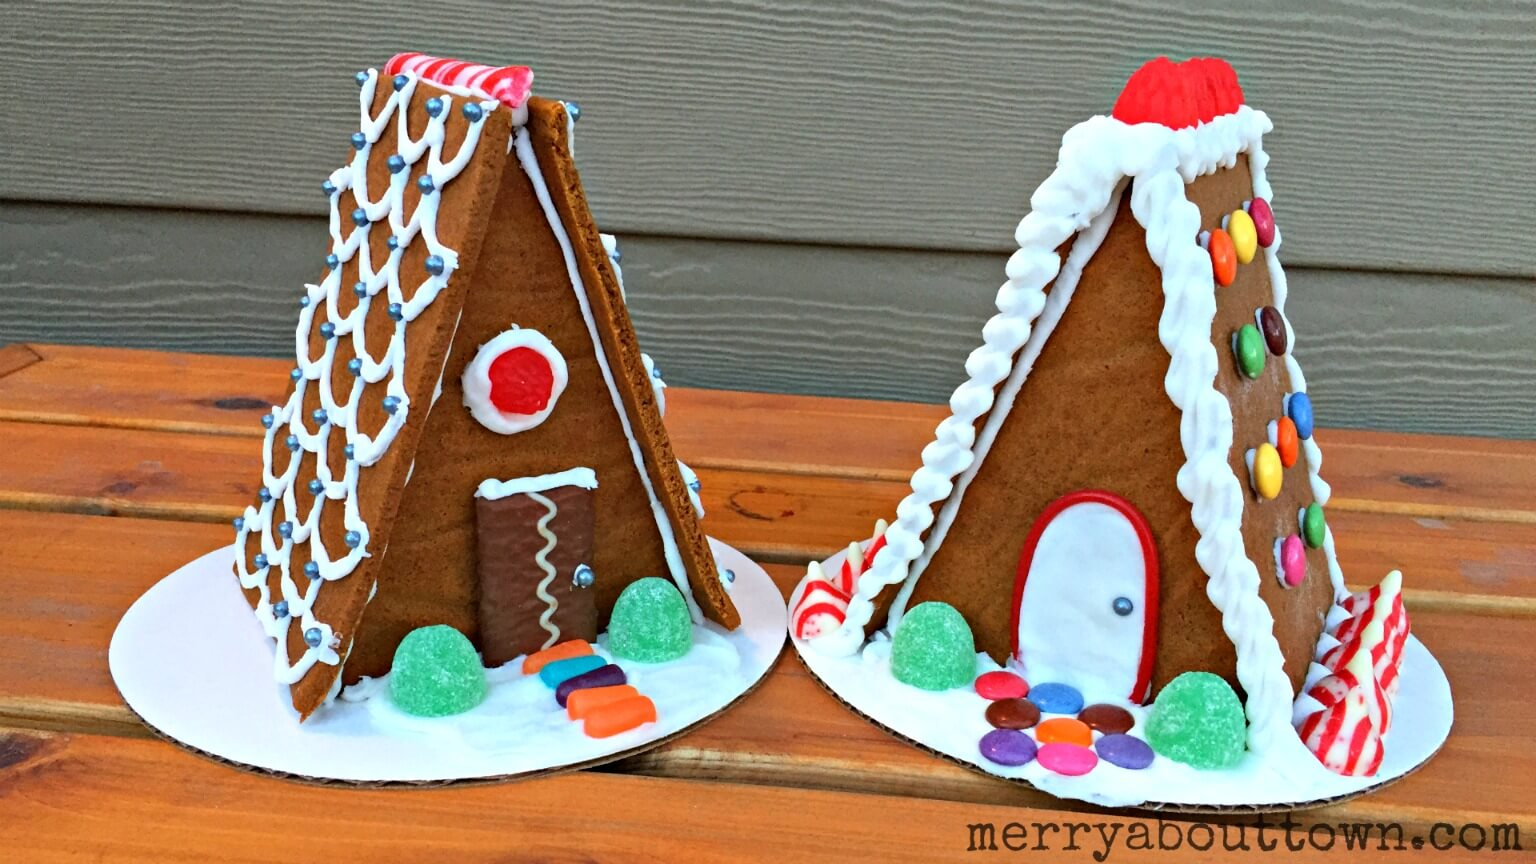 Homemade Gingerbread Houses - Merry About Town